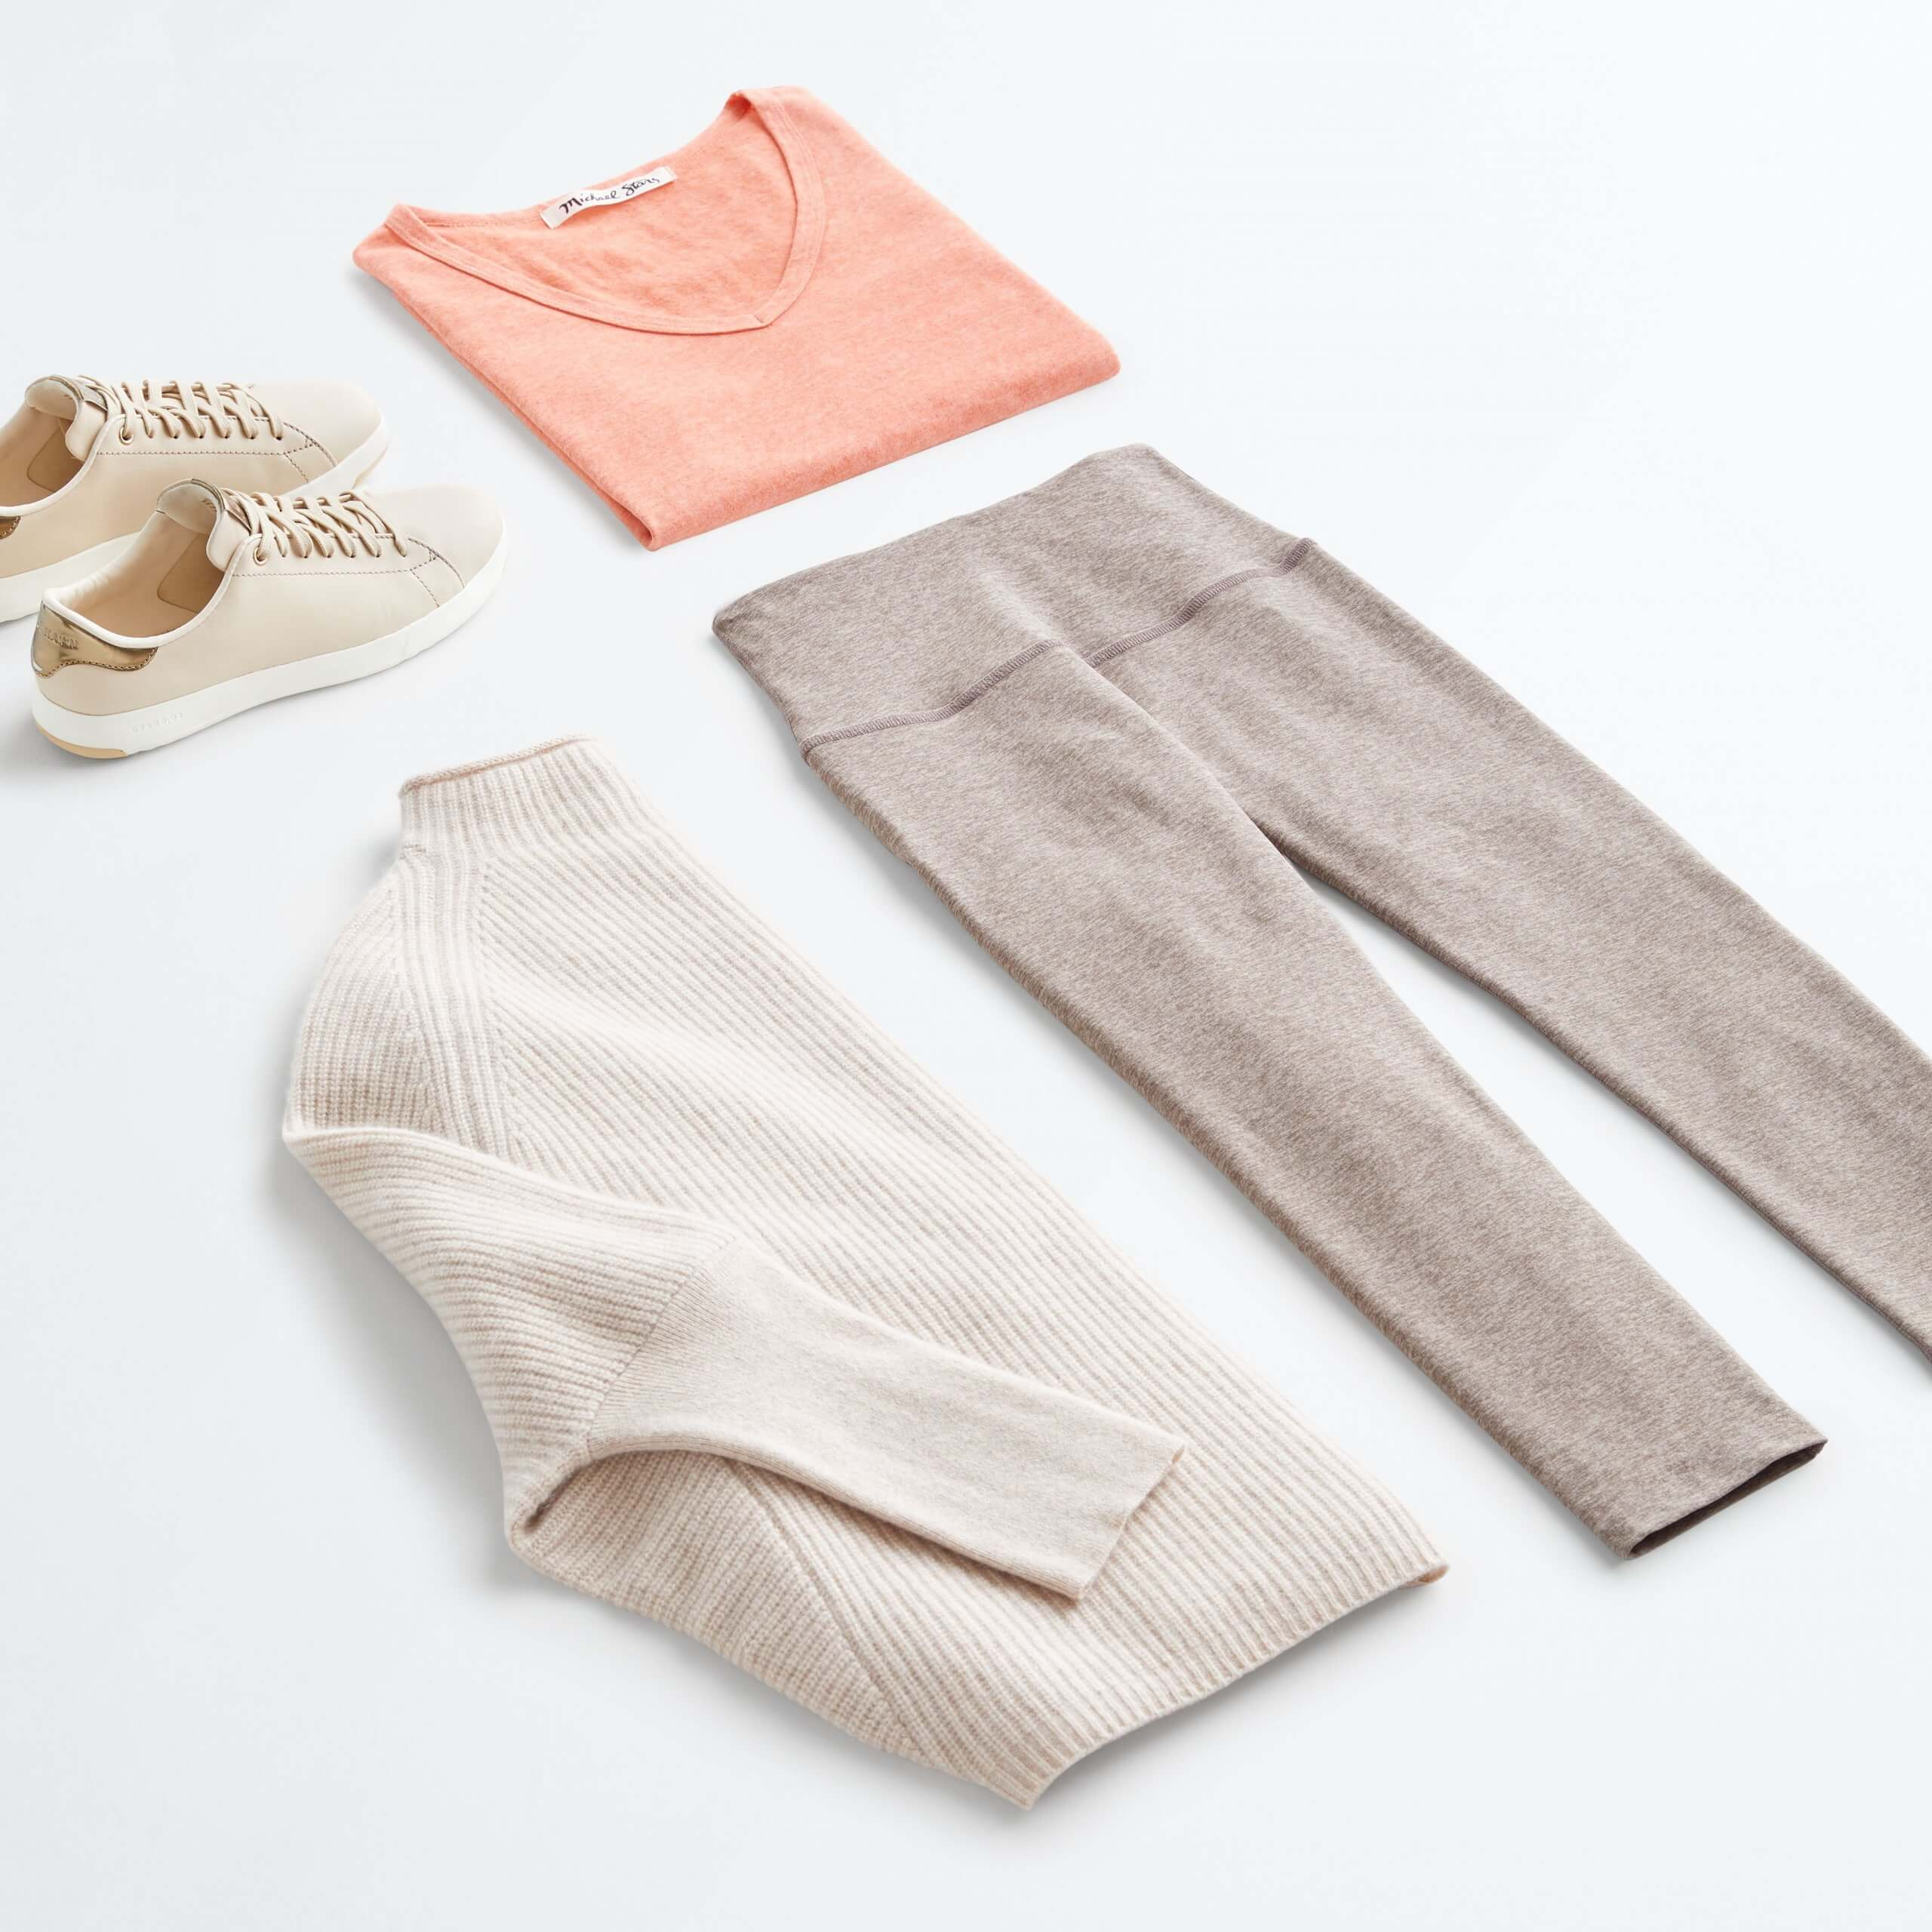 Stitch Fix Women's outfit laydown featuring beige leggings, cream pullover, pink t-shirt and tan sneakers.